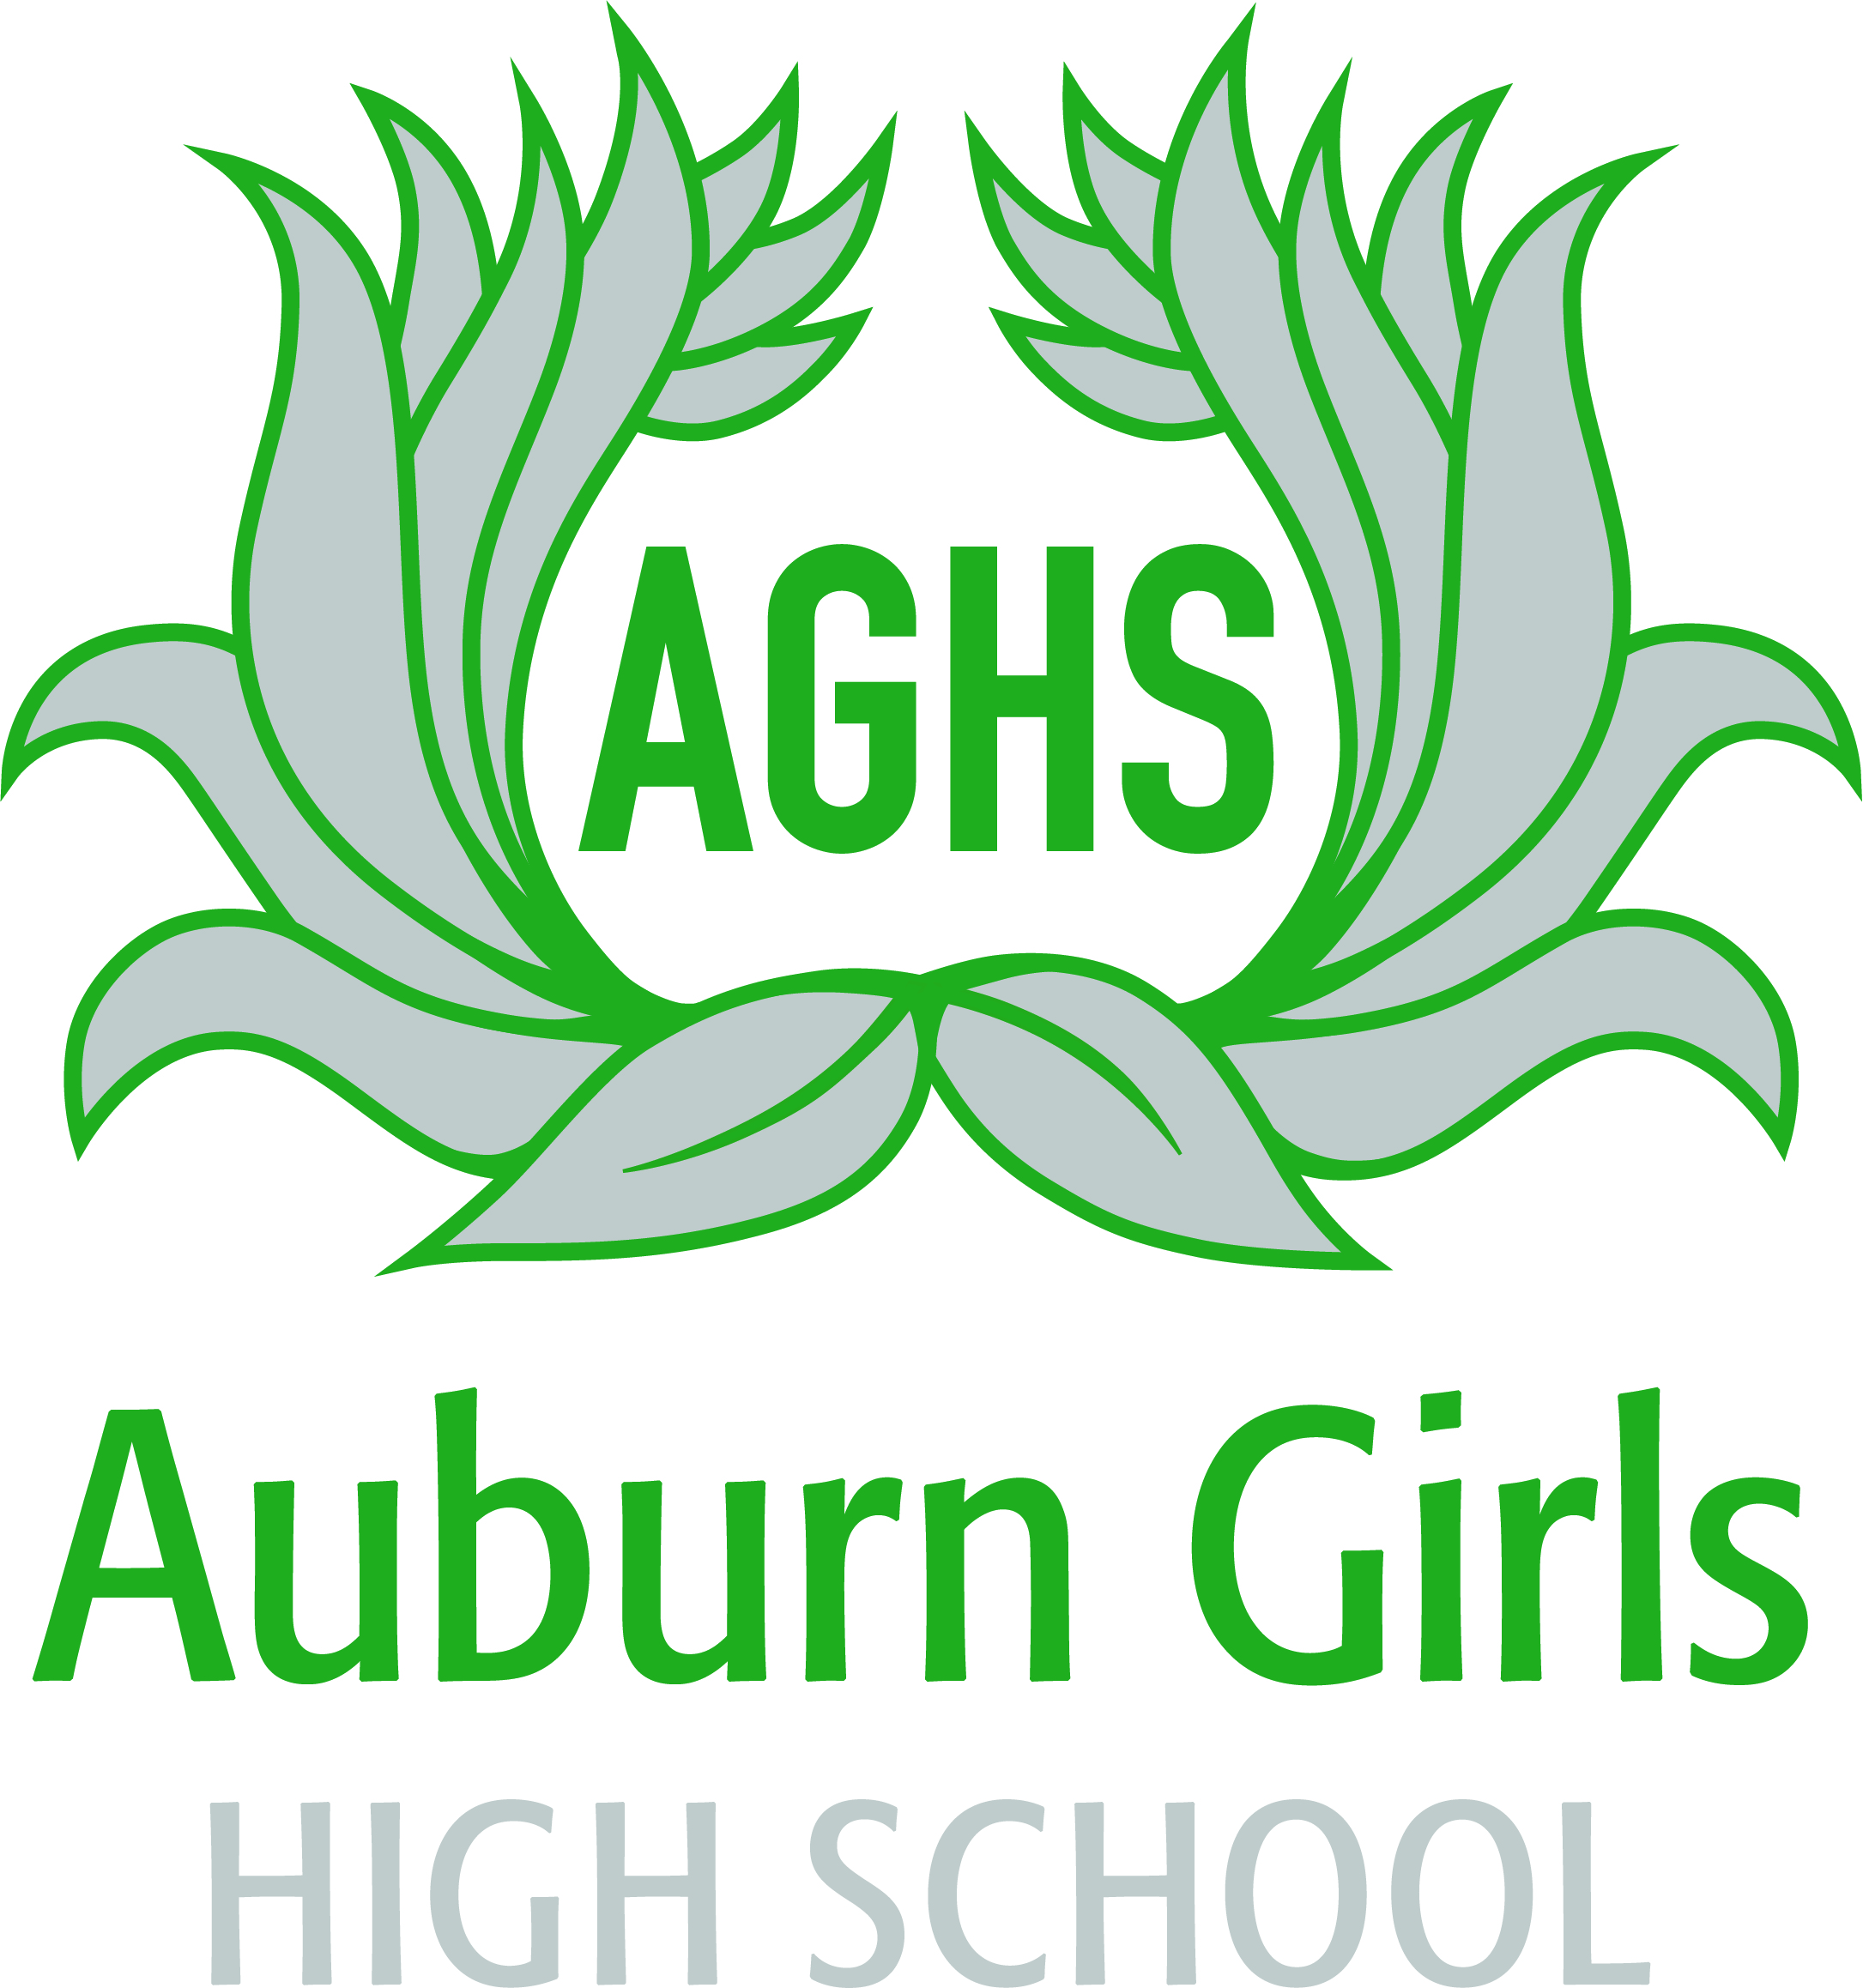 Auburn Girls High School logo